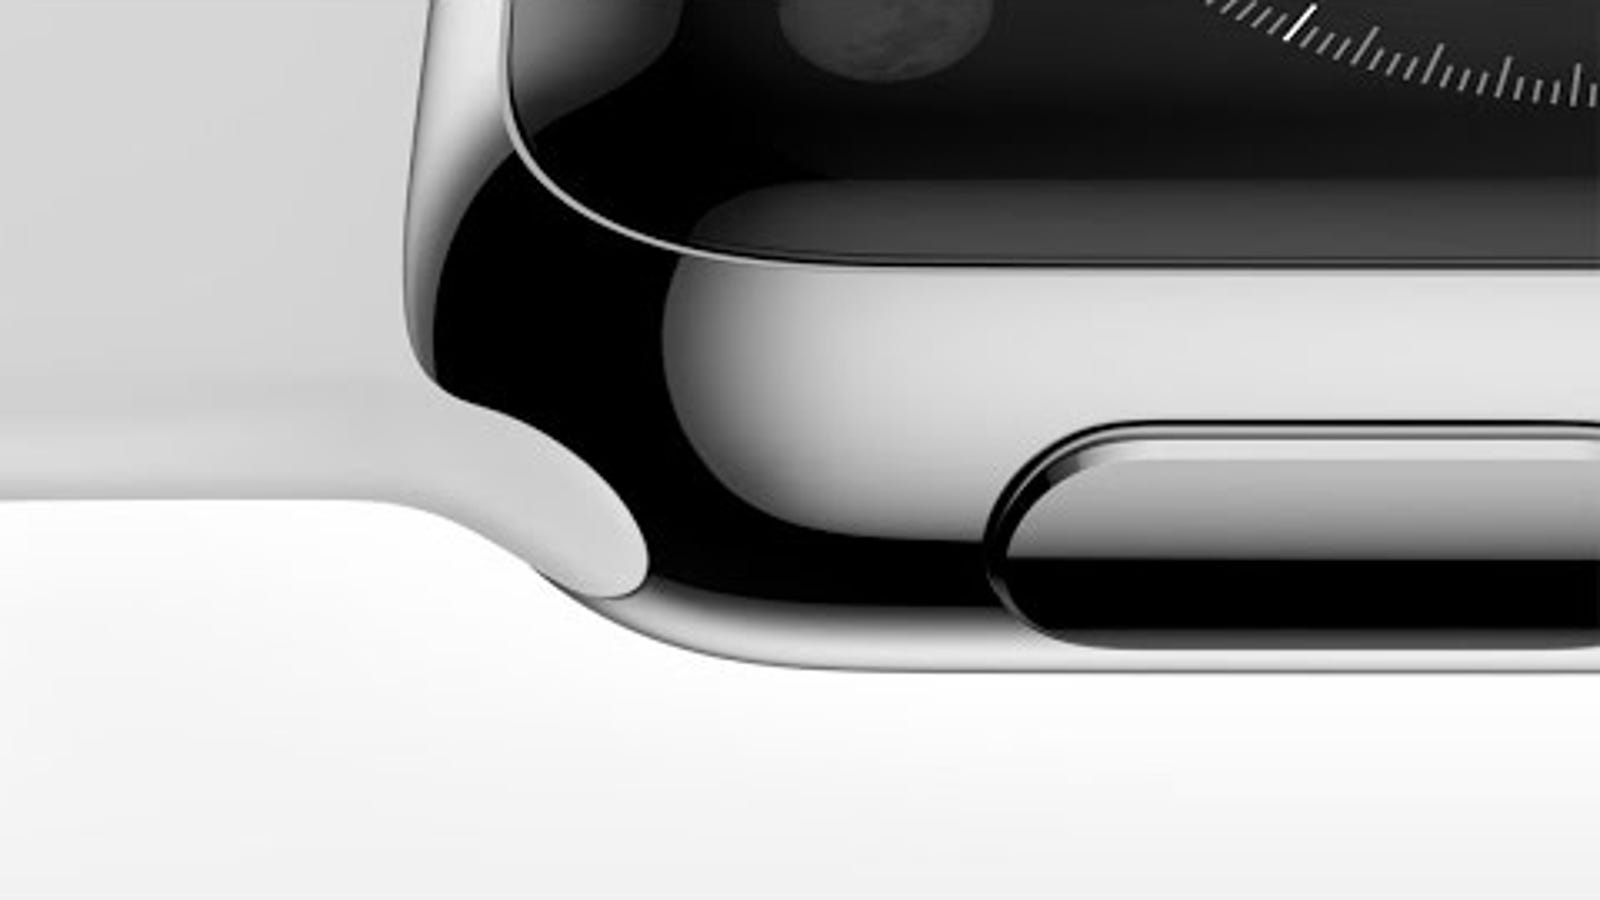 El nuevo Apple Watch, explicado en vídeo por Jony Ive